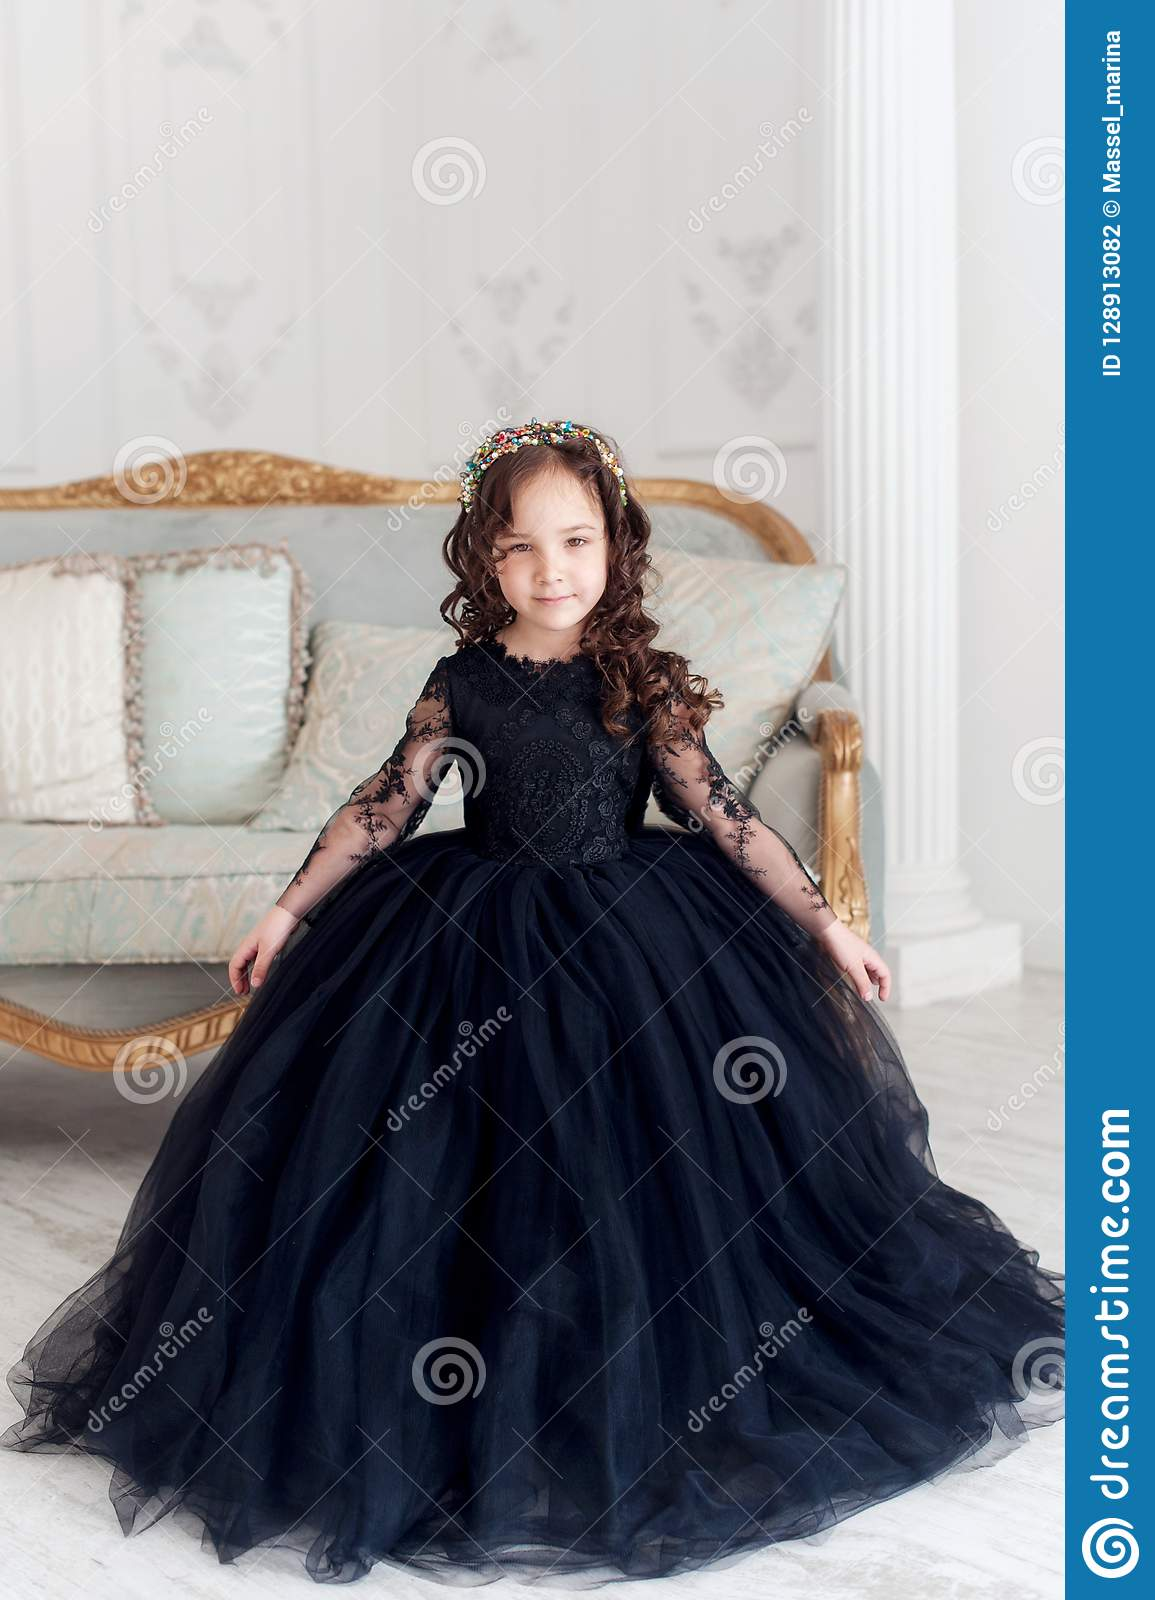 8381a2116caf Portrait Of Cute Smiling Little Girl In Black Princess Fluffy Dress ...